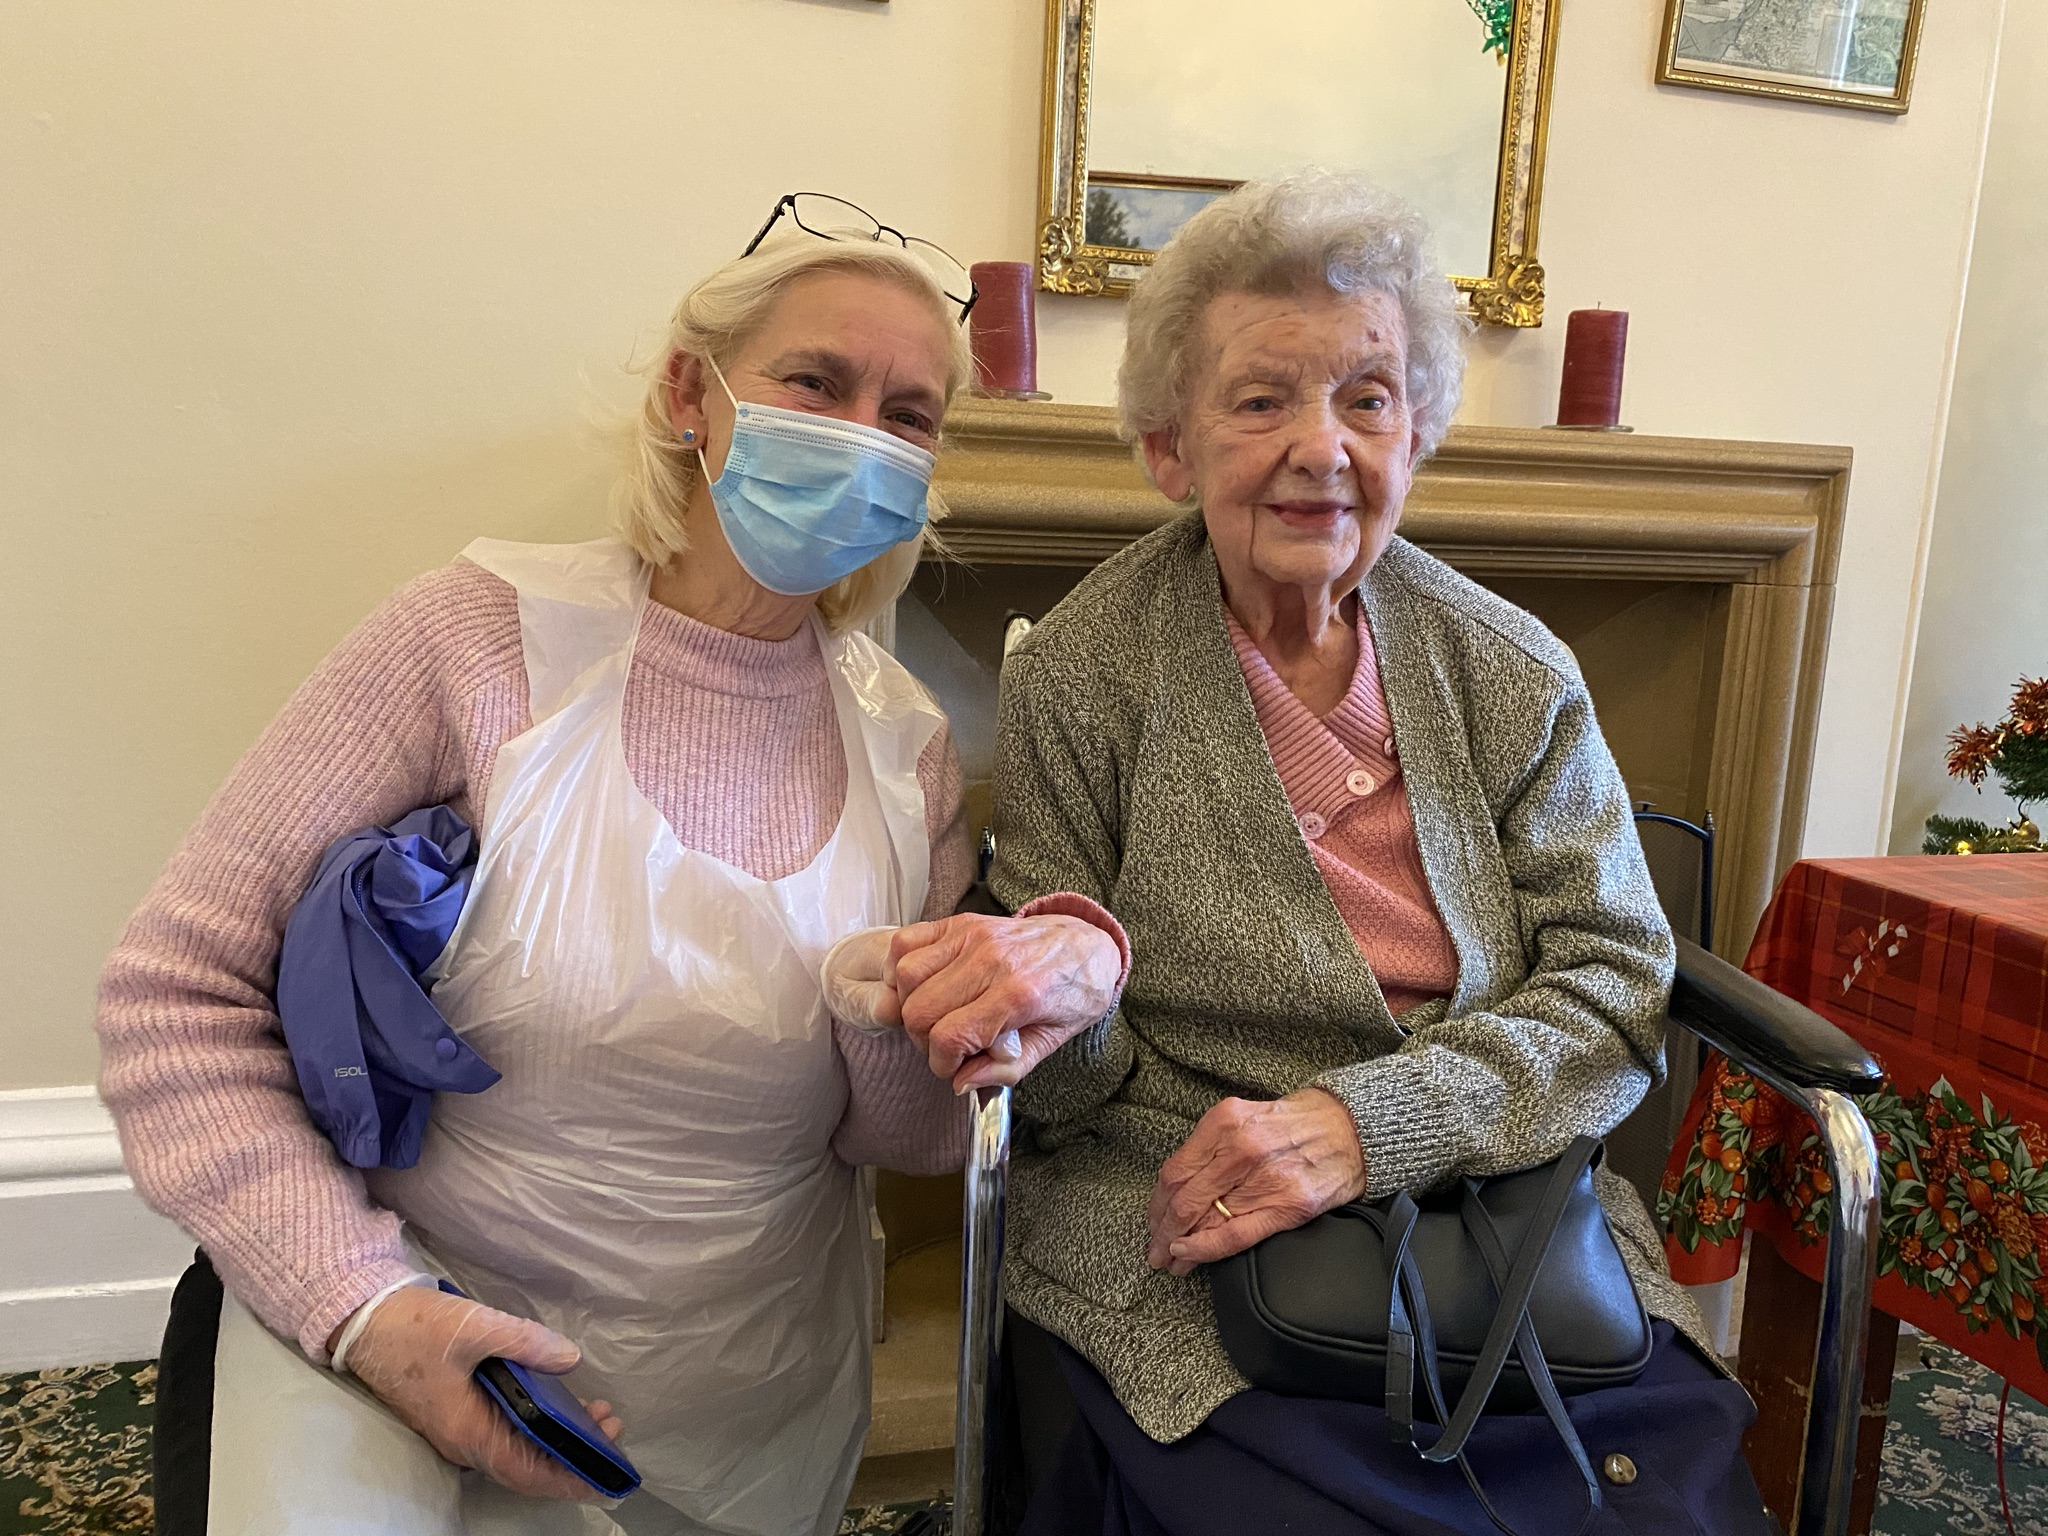 A Mother-Daughter Visit Following an LFD COVID-19 Test - 23.12.20